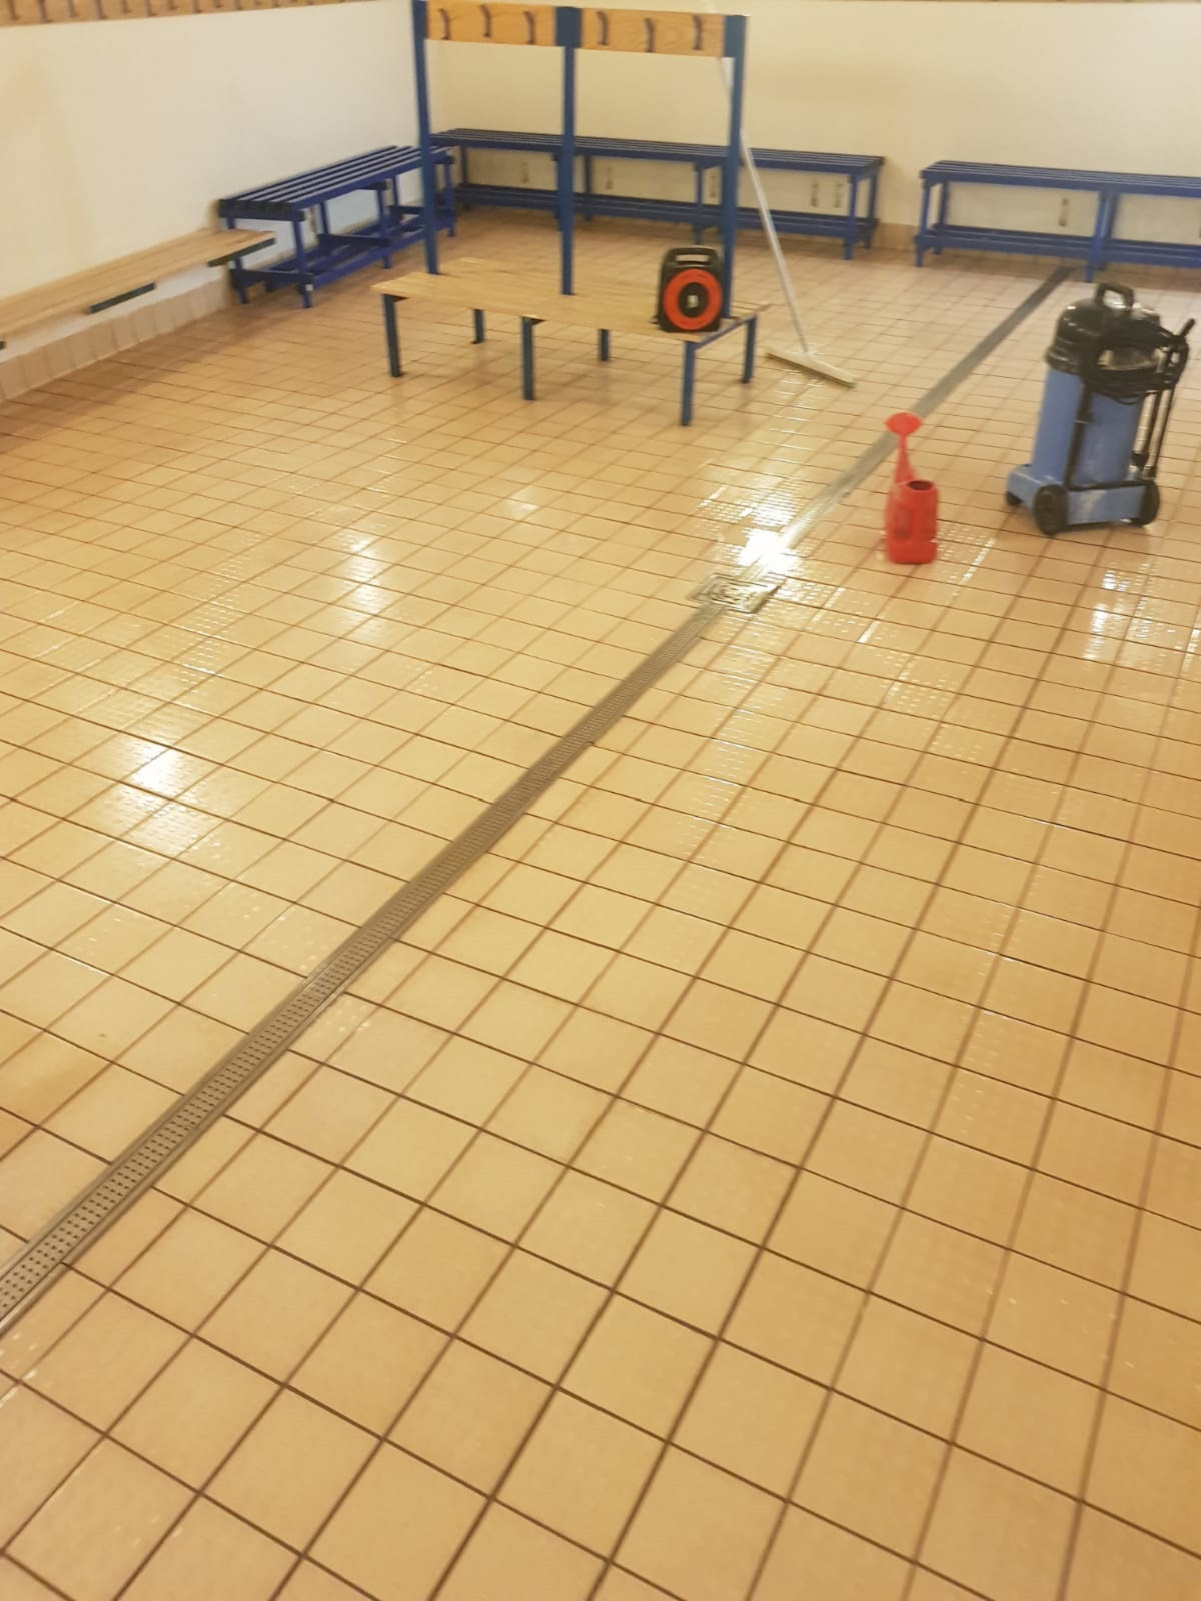 Grubby Ceramic After Cleaning at Bishop Stortford Changing Rooms